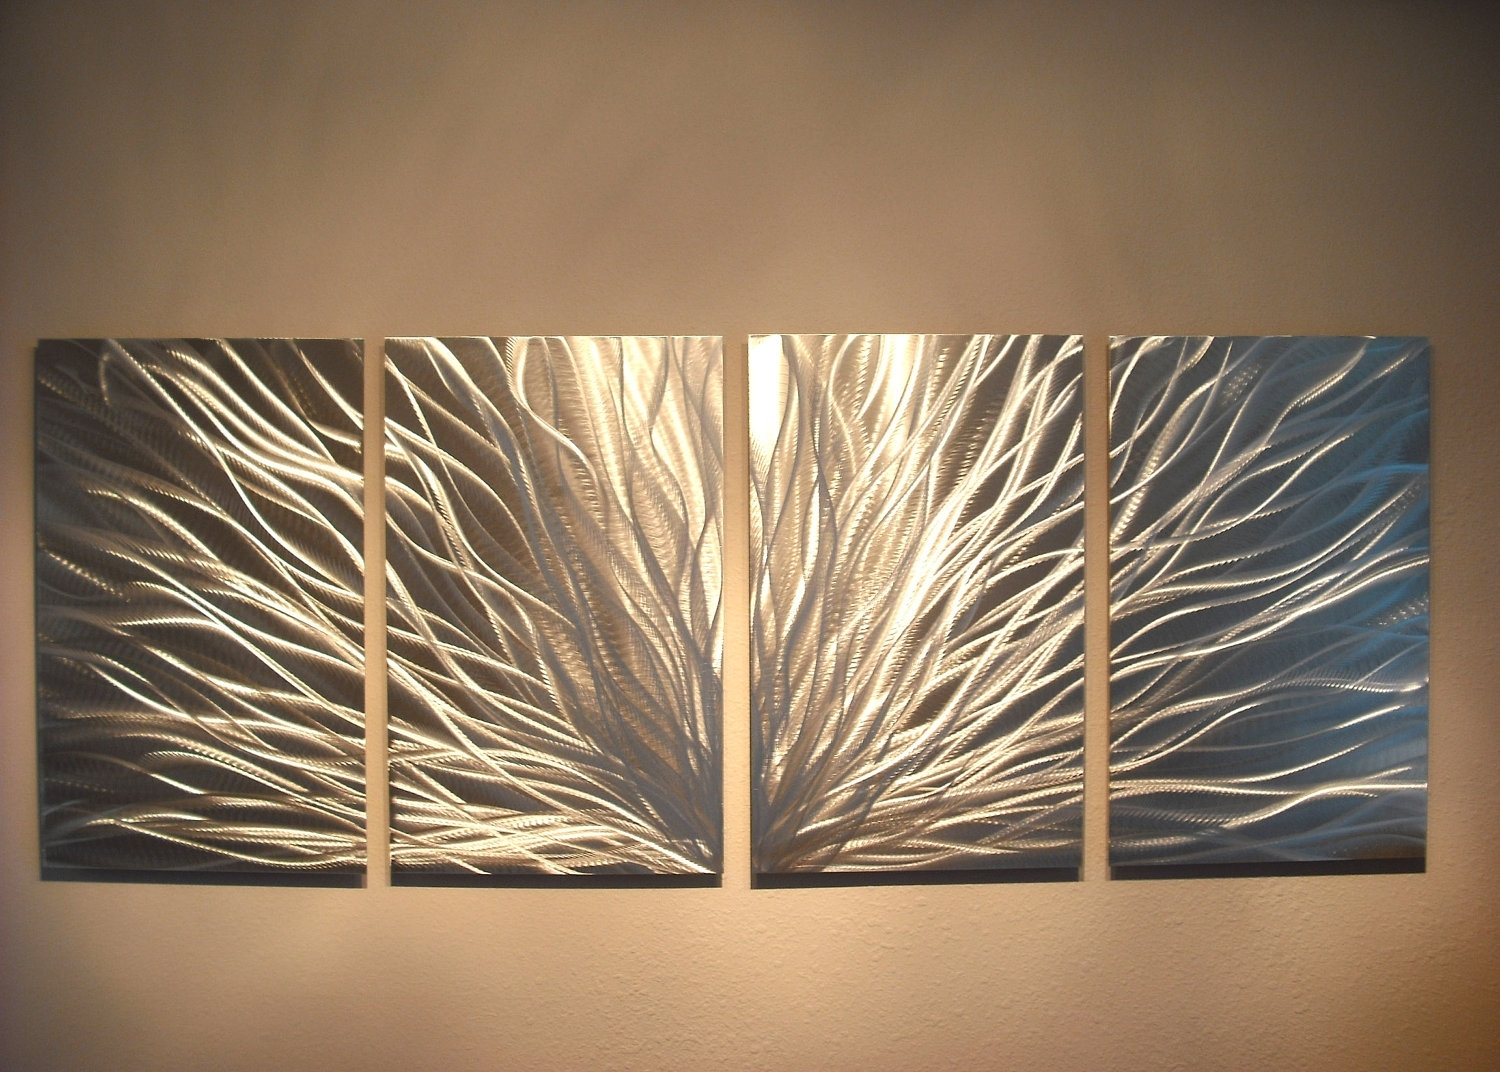 Radiance – Abstract Metal Wall Art Contemporary Modern Decor With Regard To Most Popular Inexpensive Abstract Metal Wall Art (View 17 of 20)